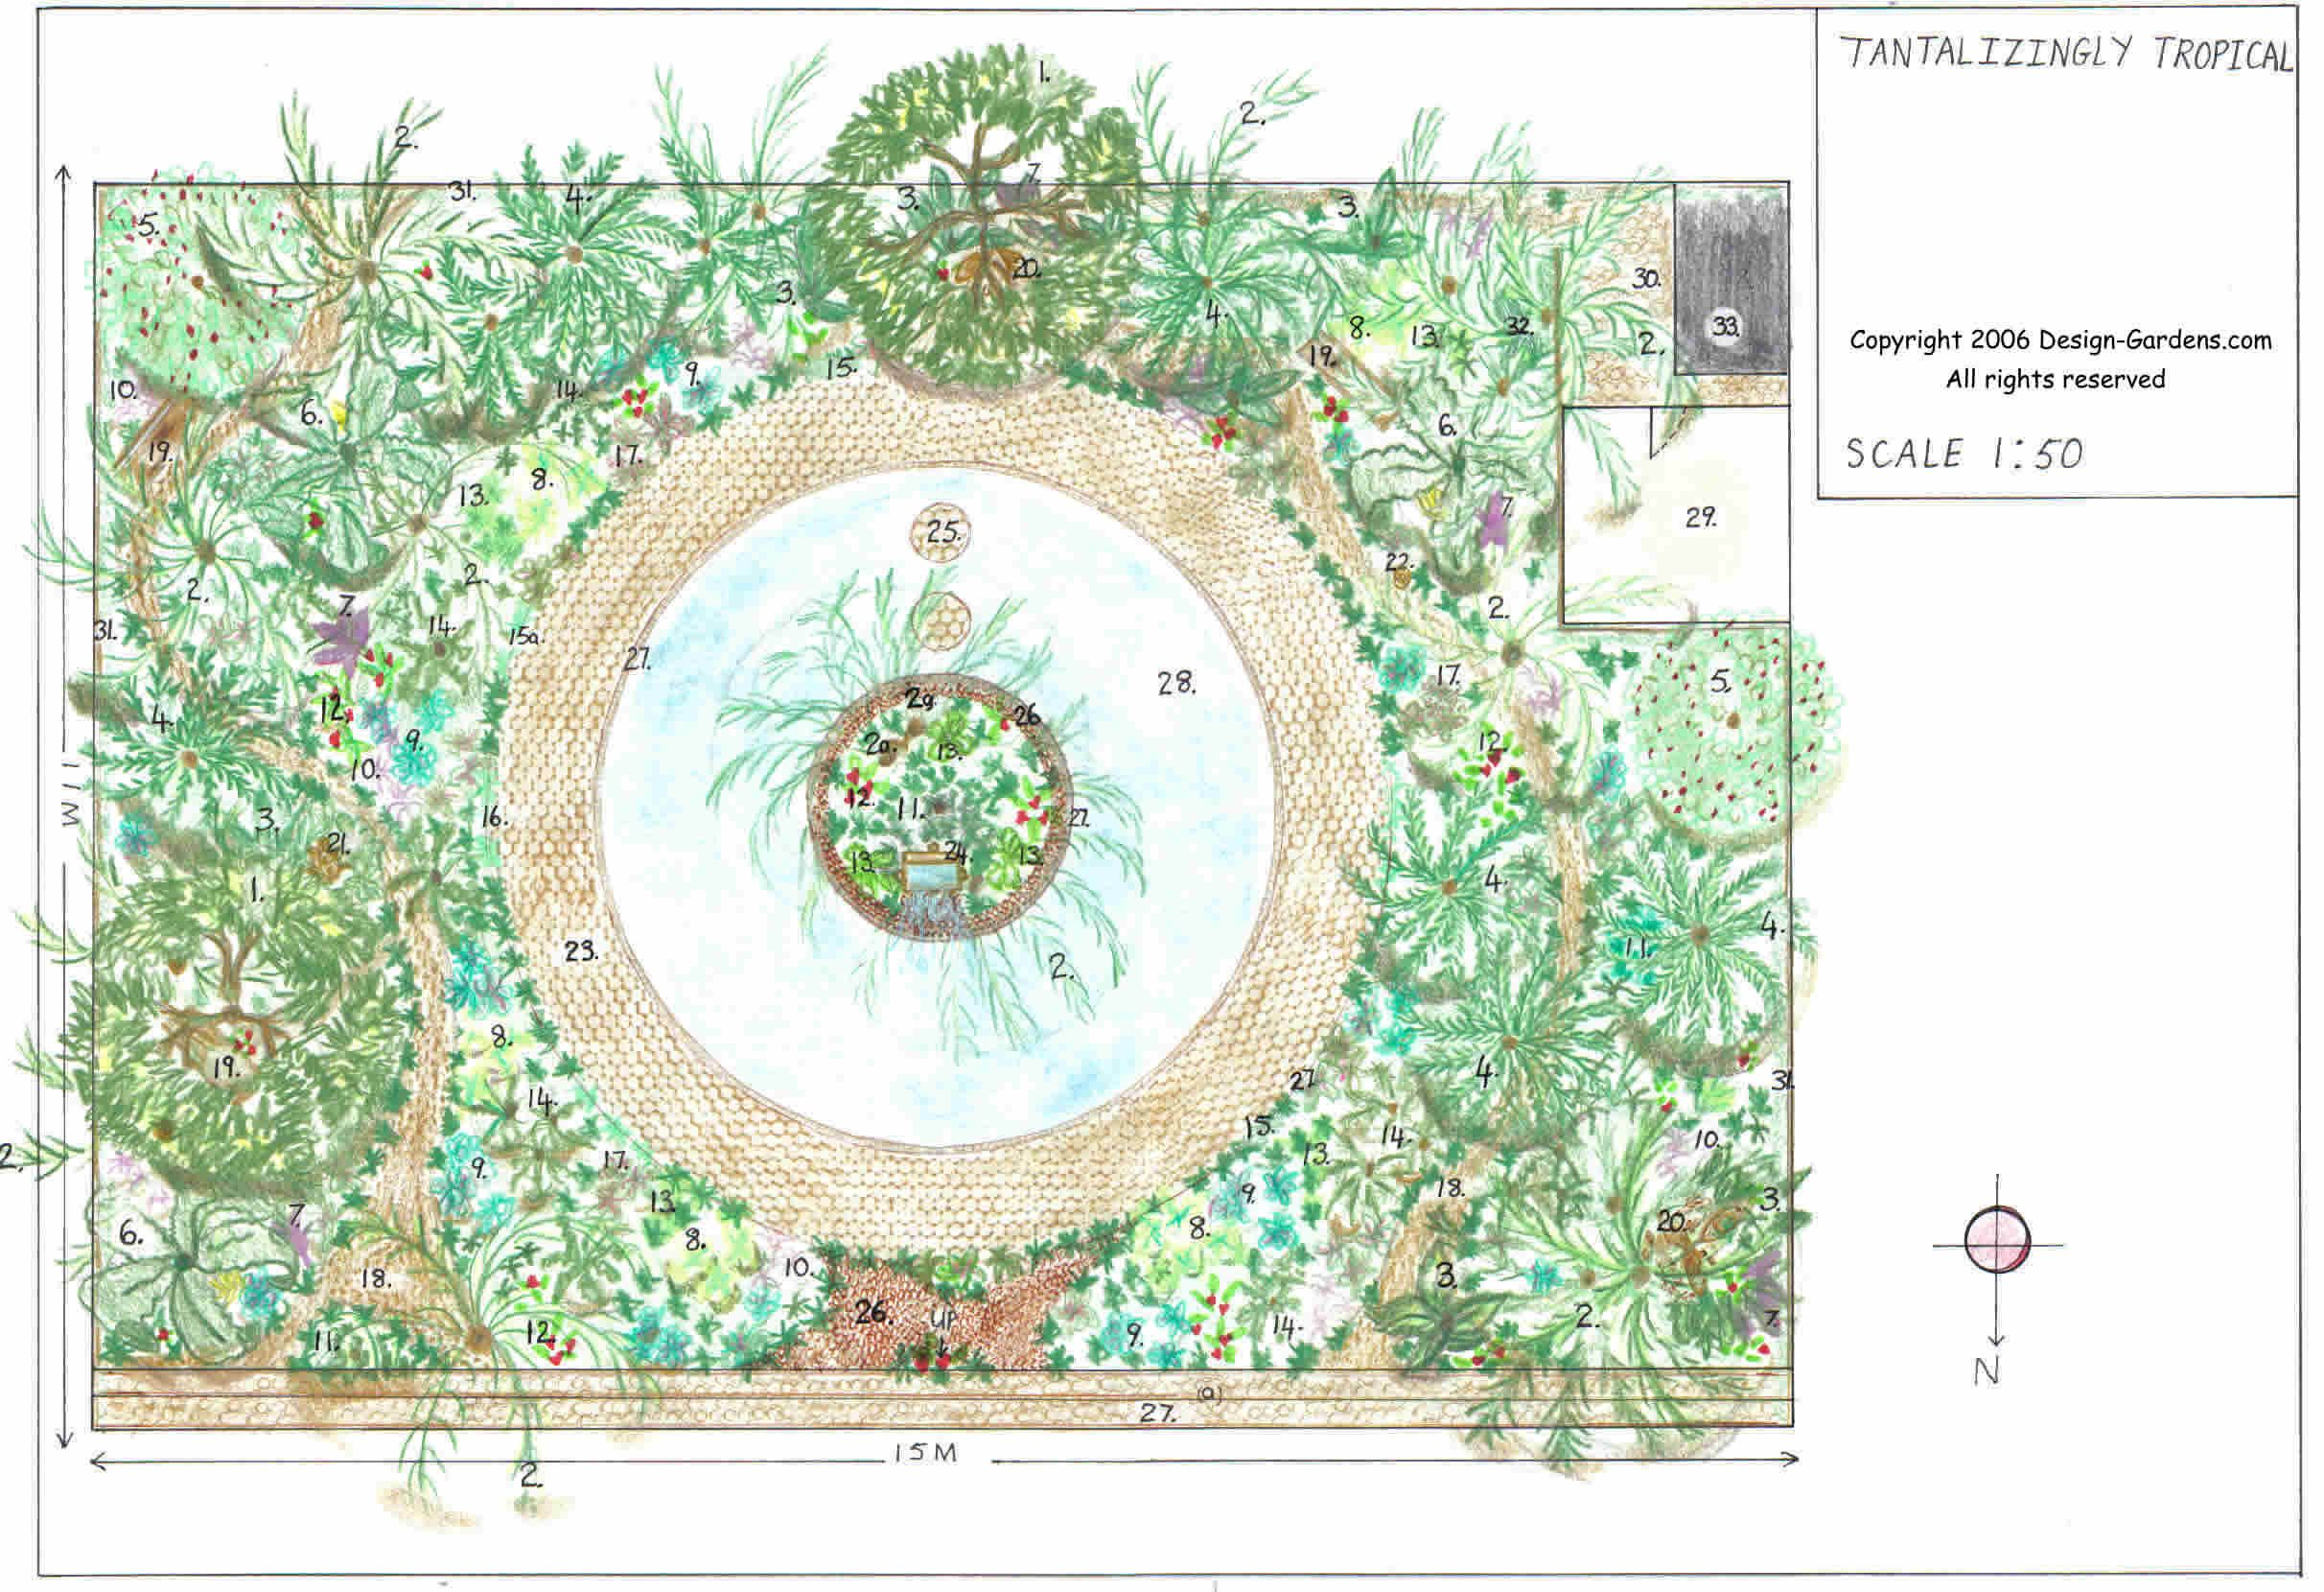 ... Home Vegetable Garden Design Plans, And Much More Below. Tags: ...